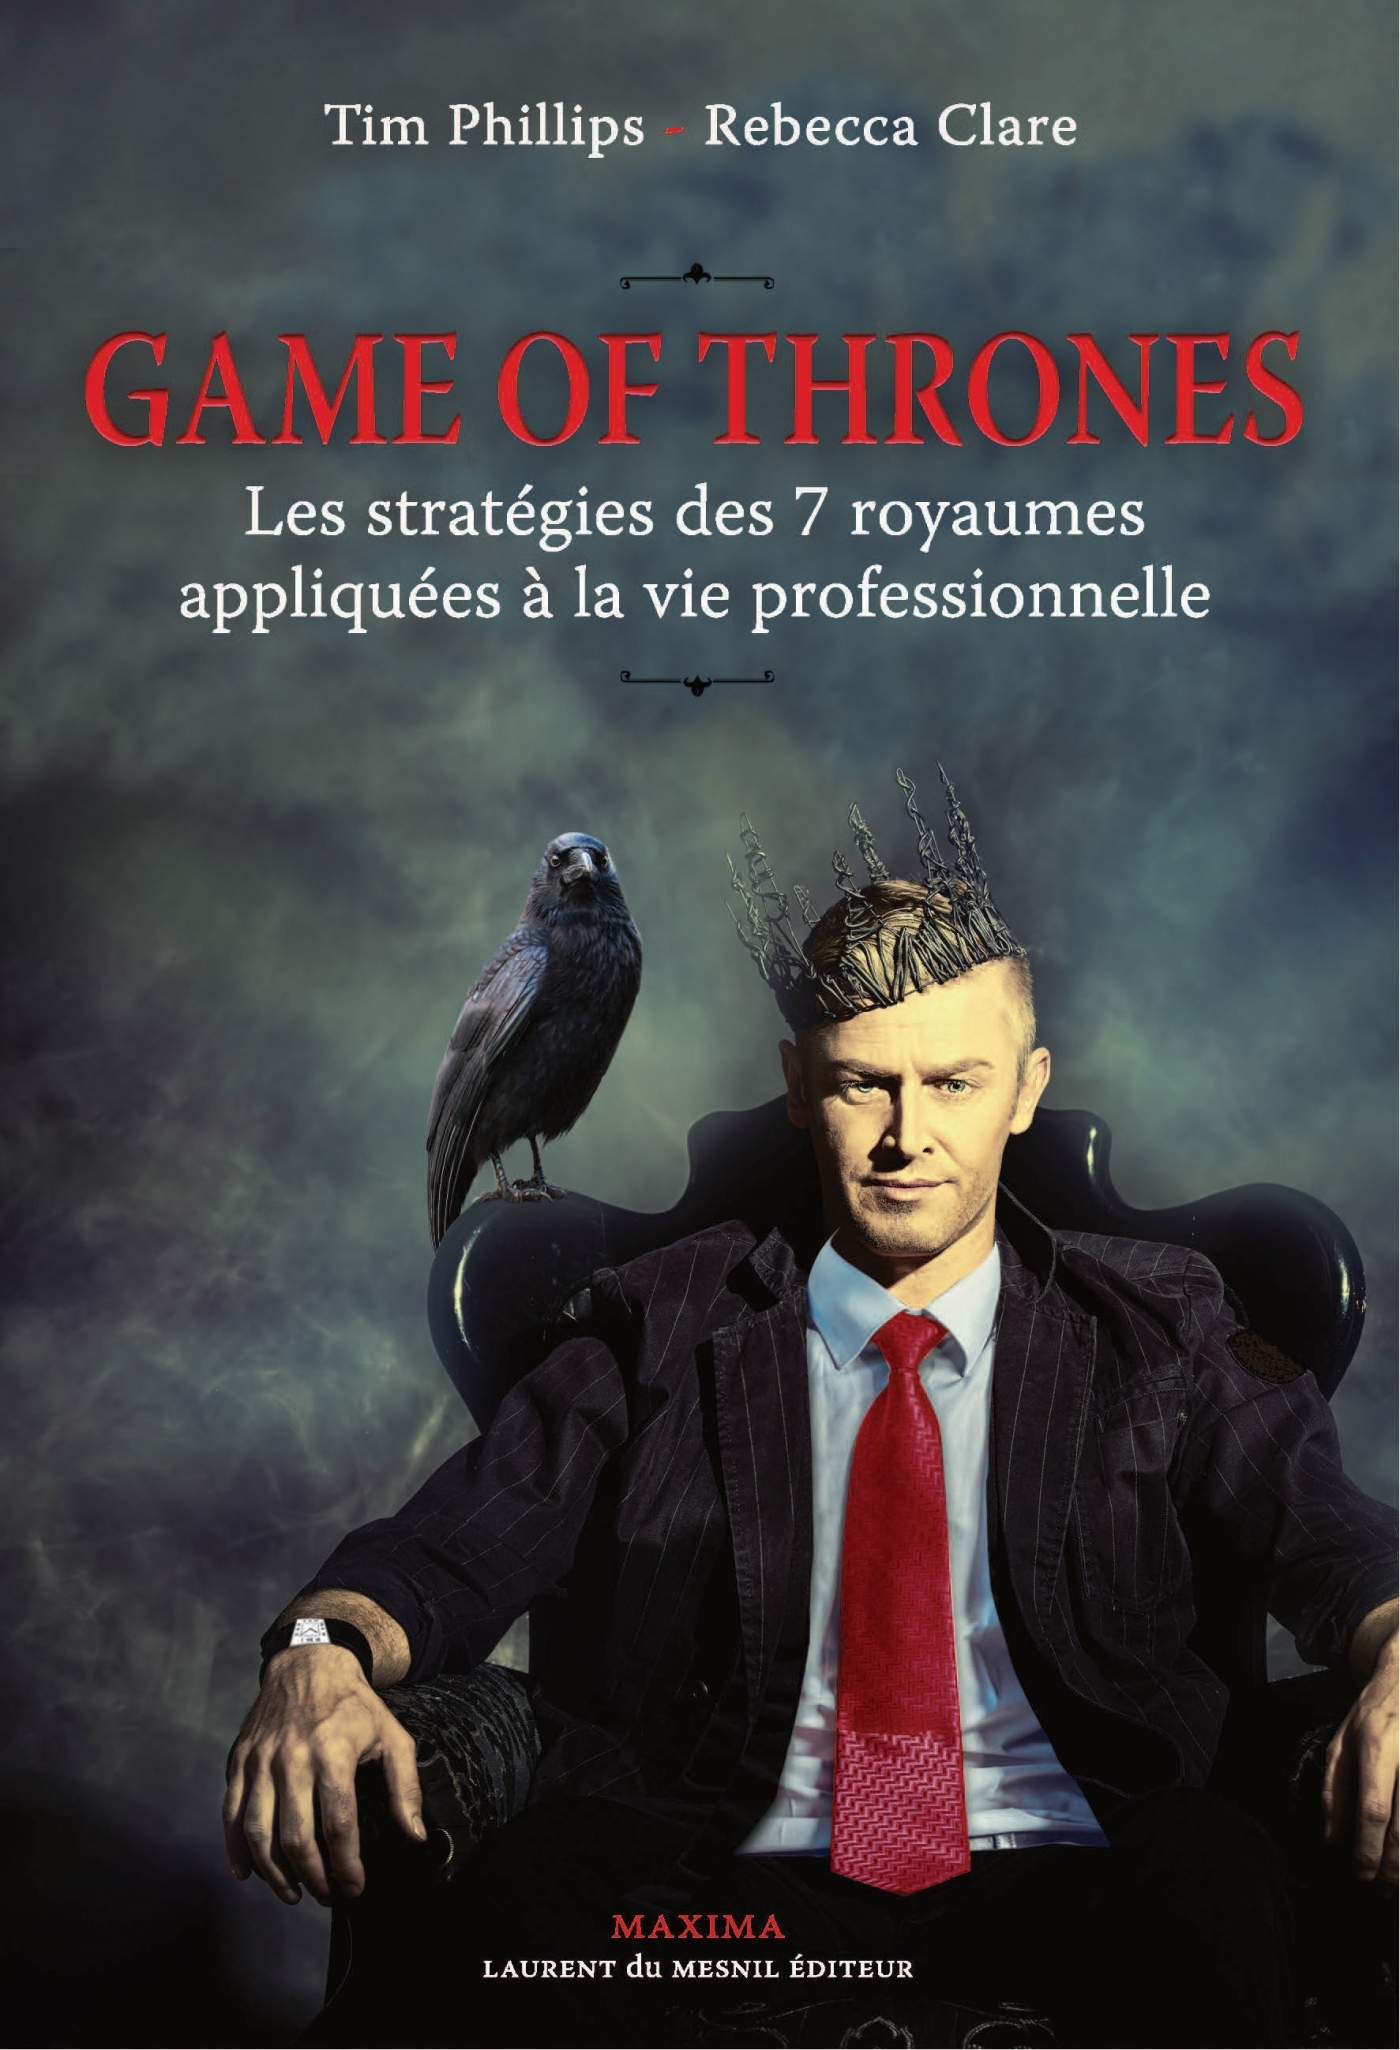 GAME OF THRONES - LES STRATEGIES DES 7 ROYAUMES APPLIQUEES A LA VIE PROFESSIONNELLE